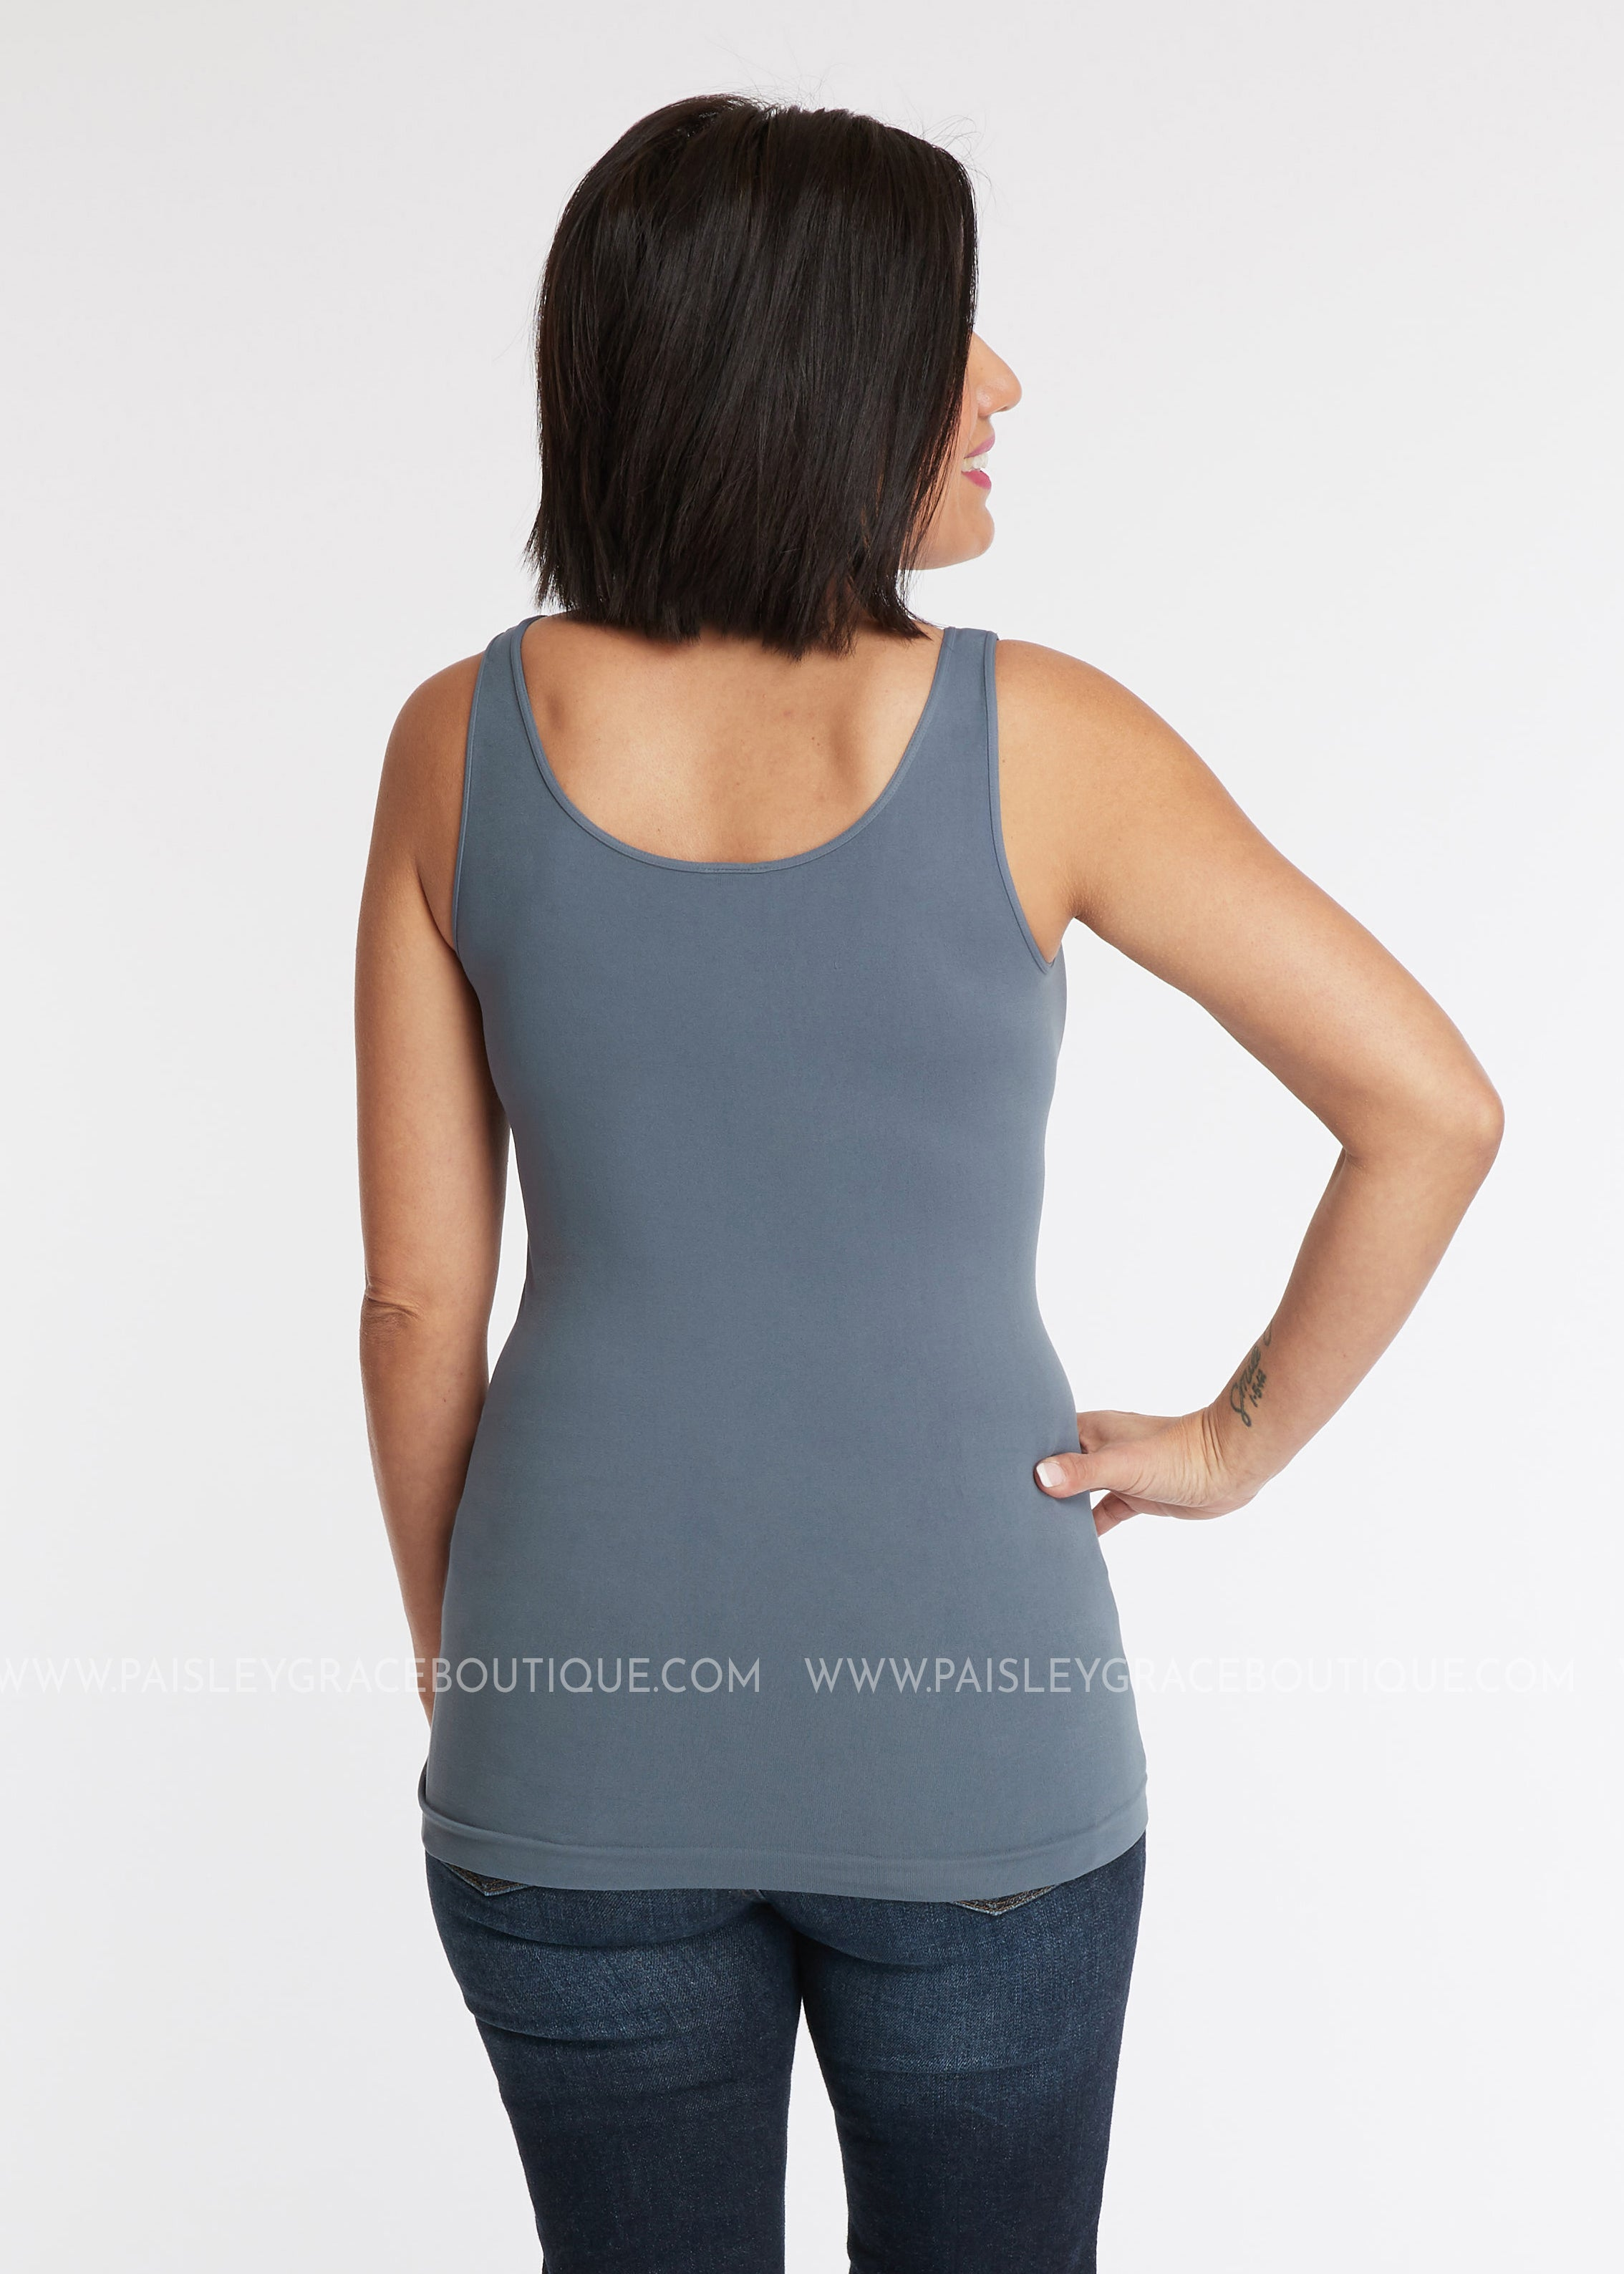 Luxe Wide Strap Tank Top/Cami - SLATE (REG ONLY)